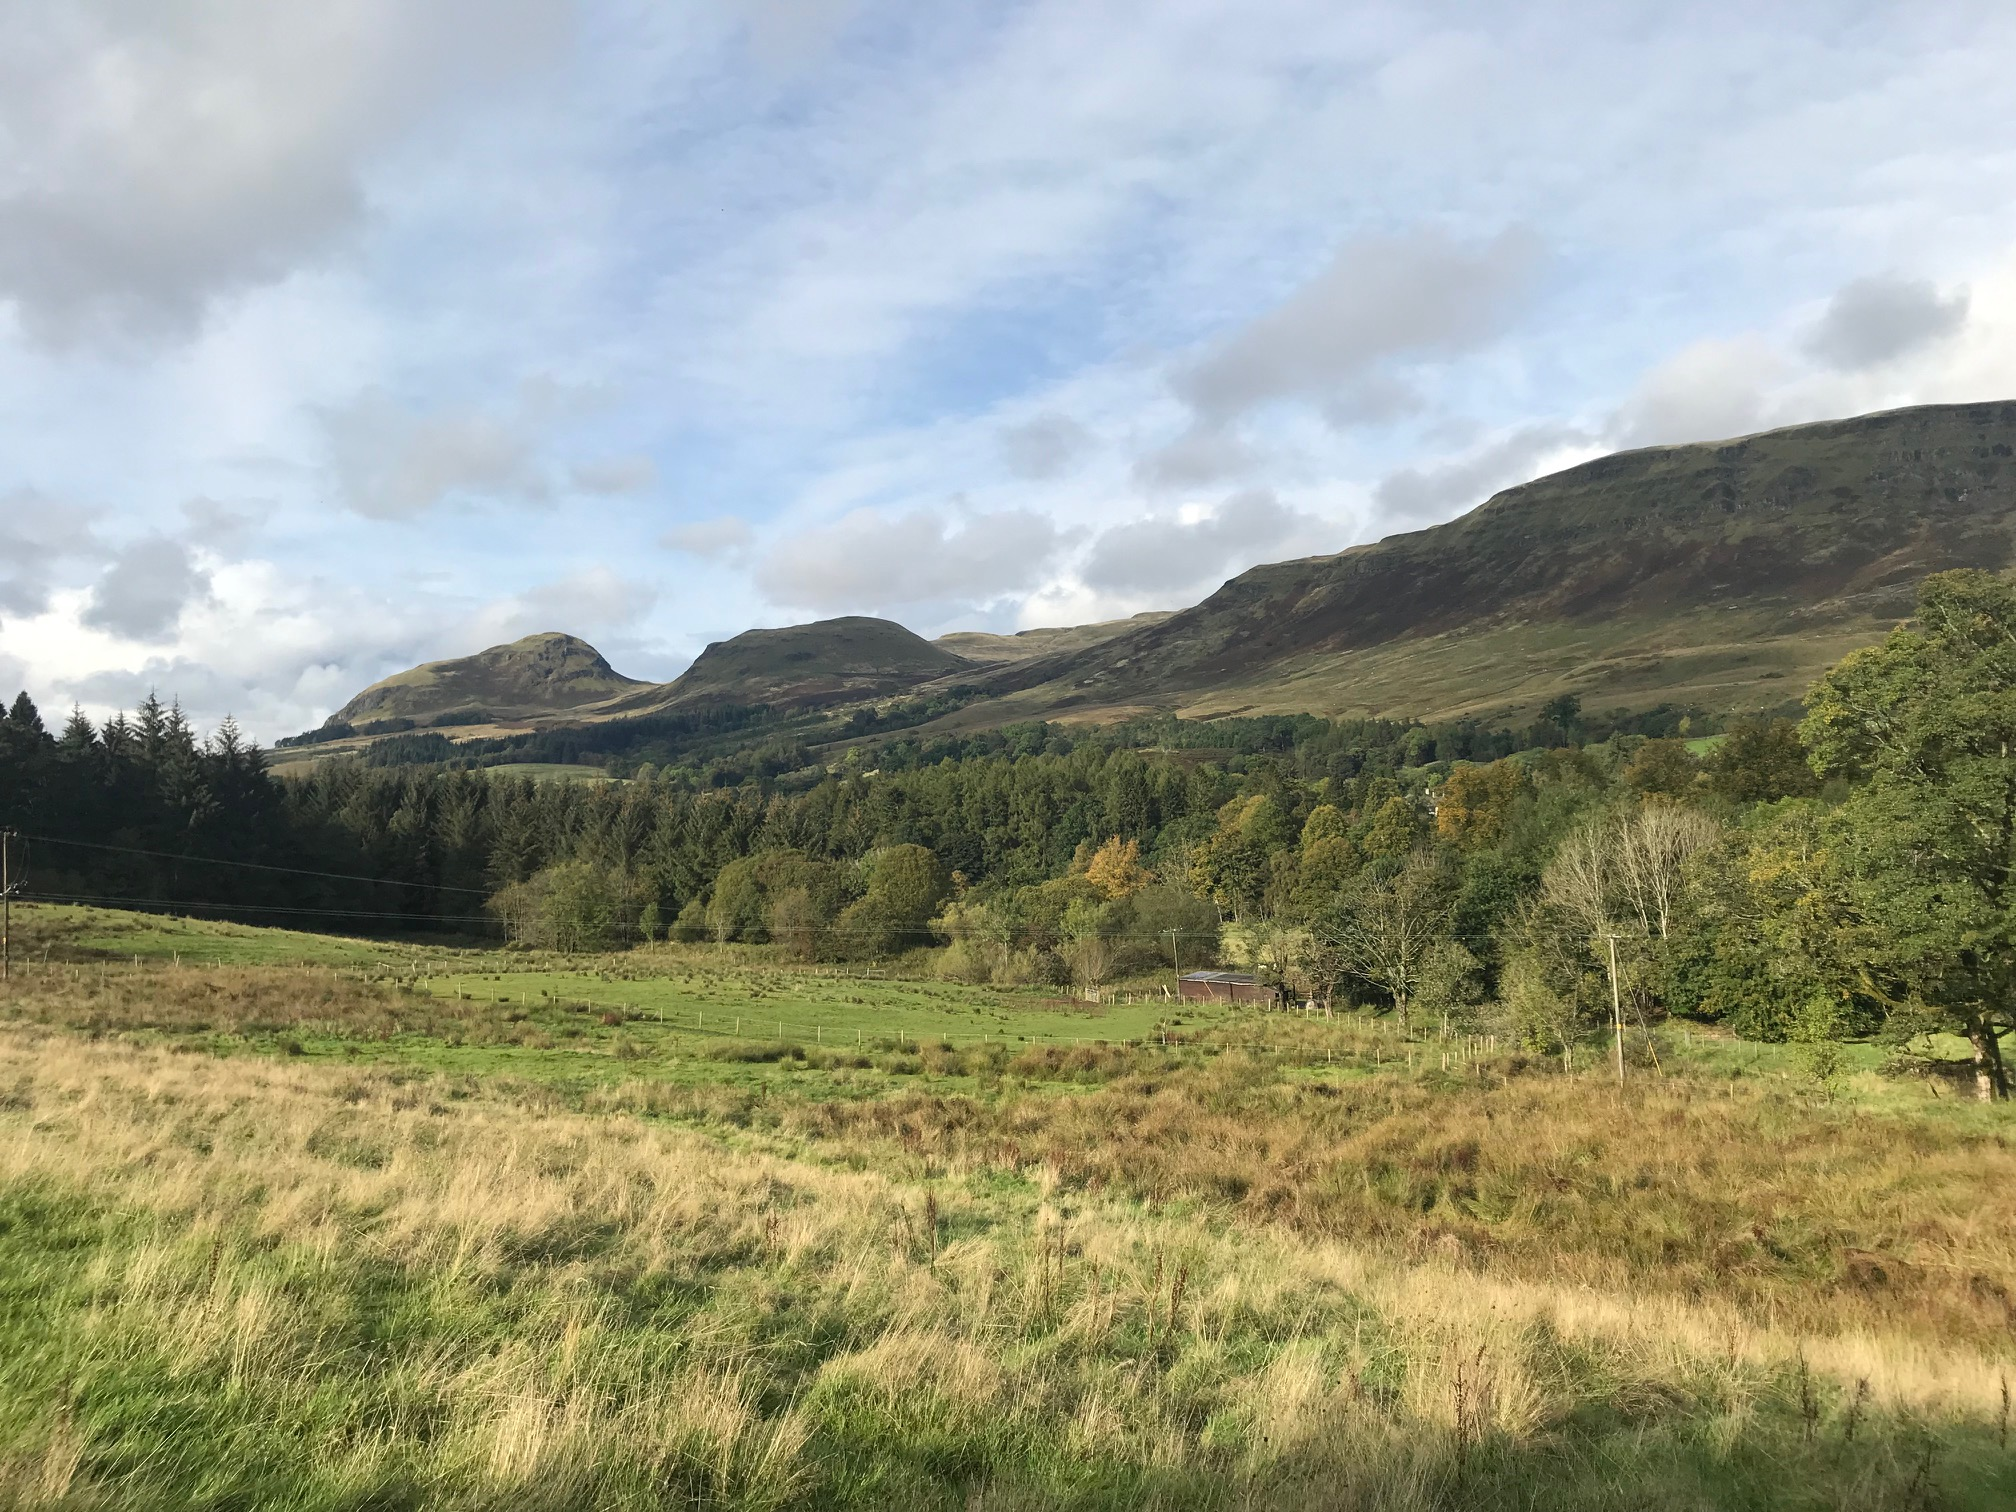 View from the West Highland Way across the valley to Dumgoyne and Earls Seat behind it